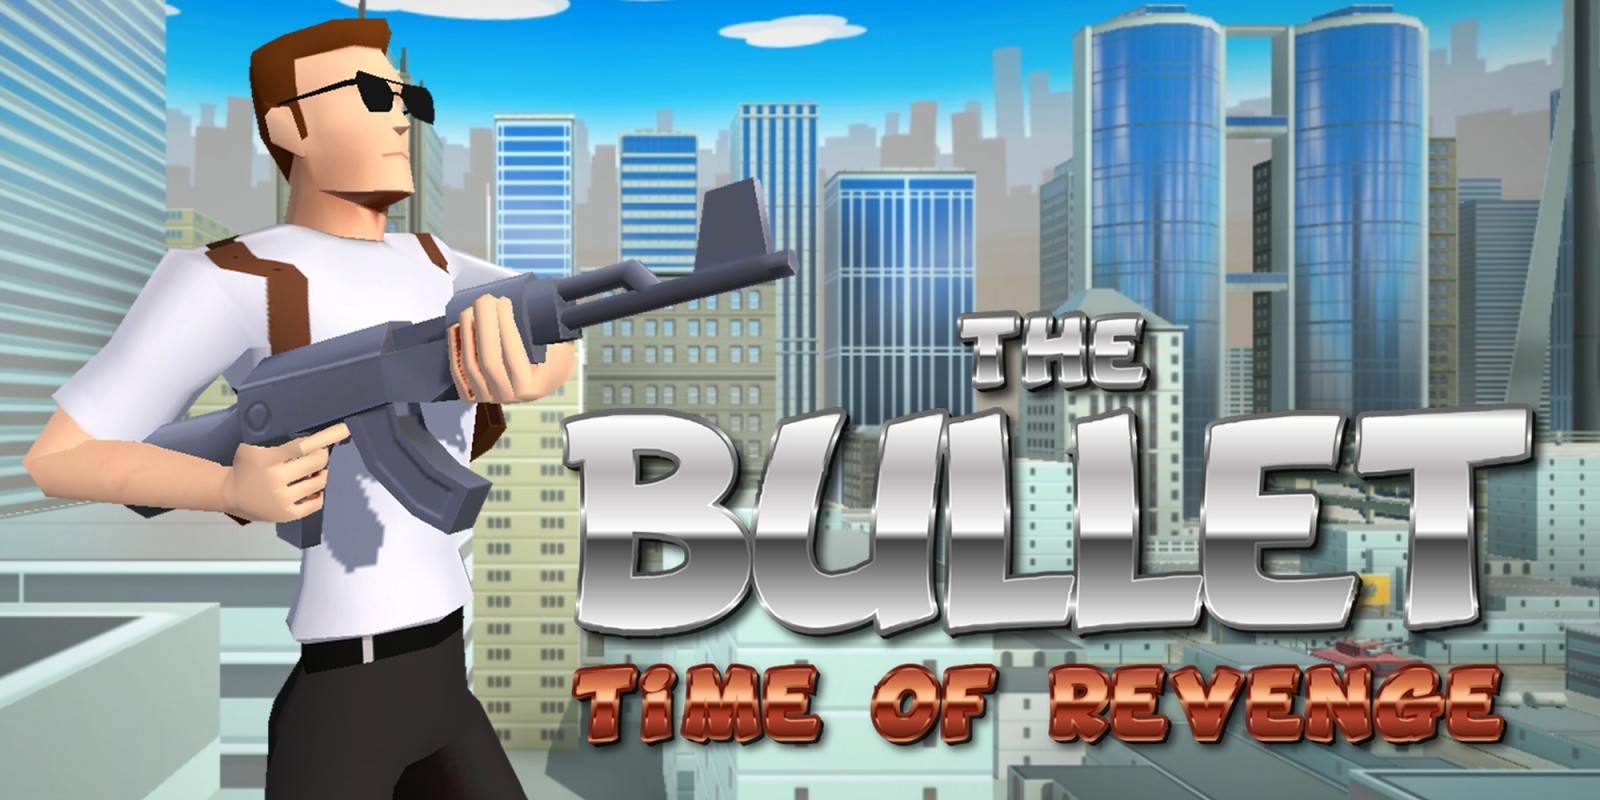 The Bullet: Time of Revenge